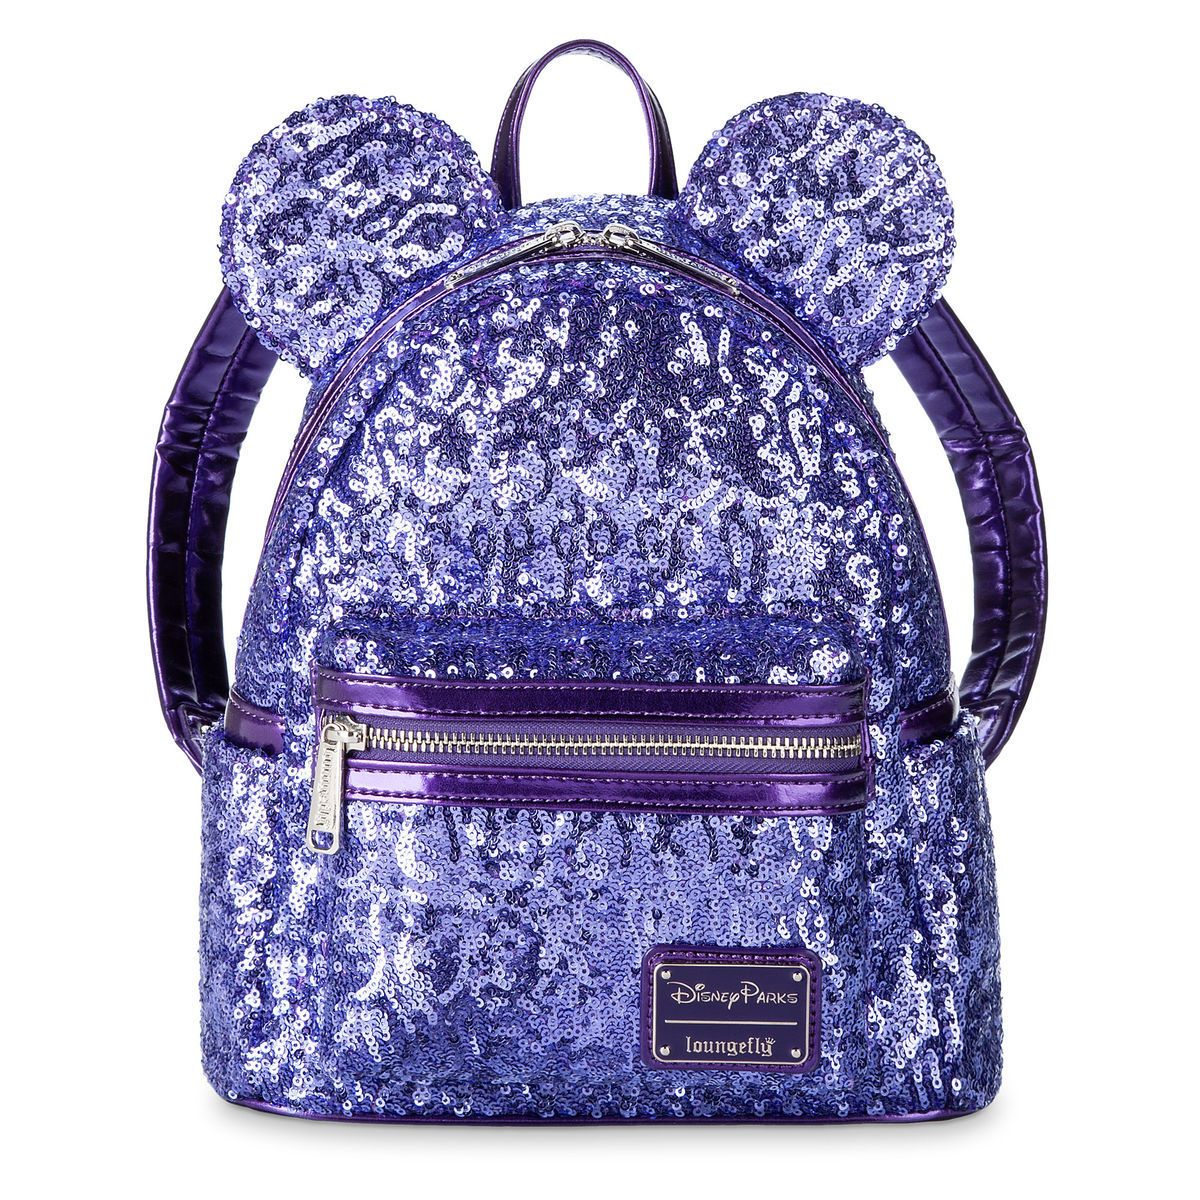 dbdf0fe0b2 Product Image of Minnie Mouse Potion Purple Sequined Mini Backpack by  Loungefly   1